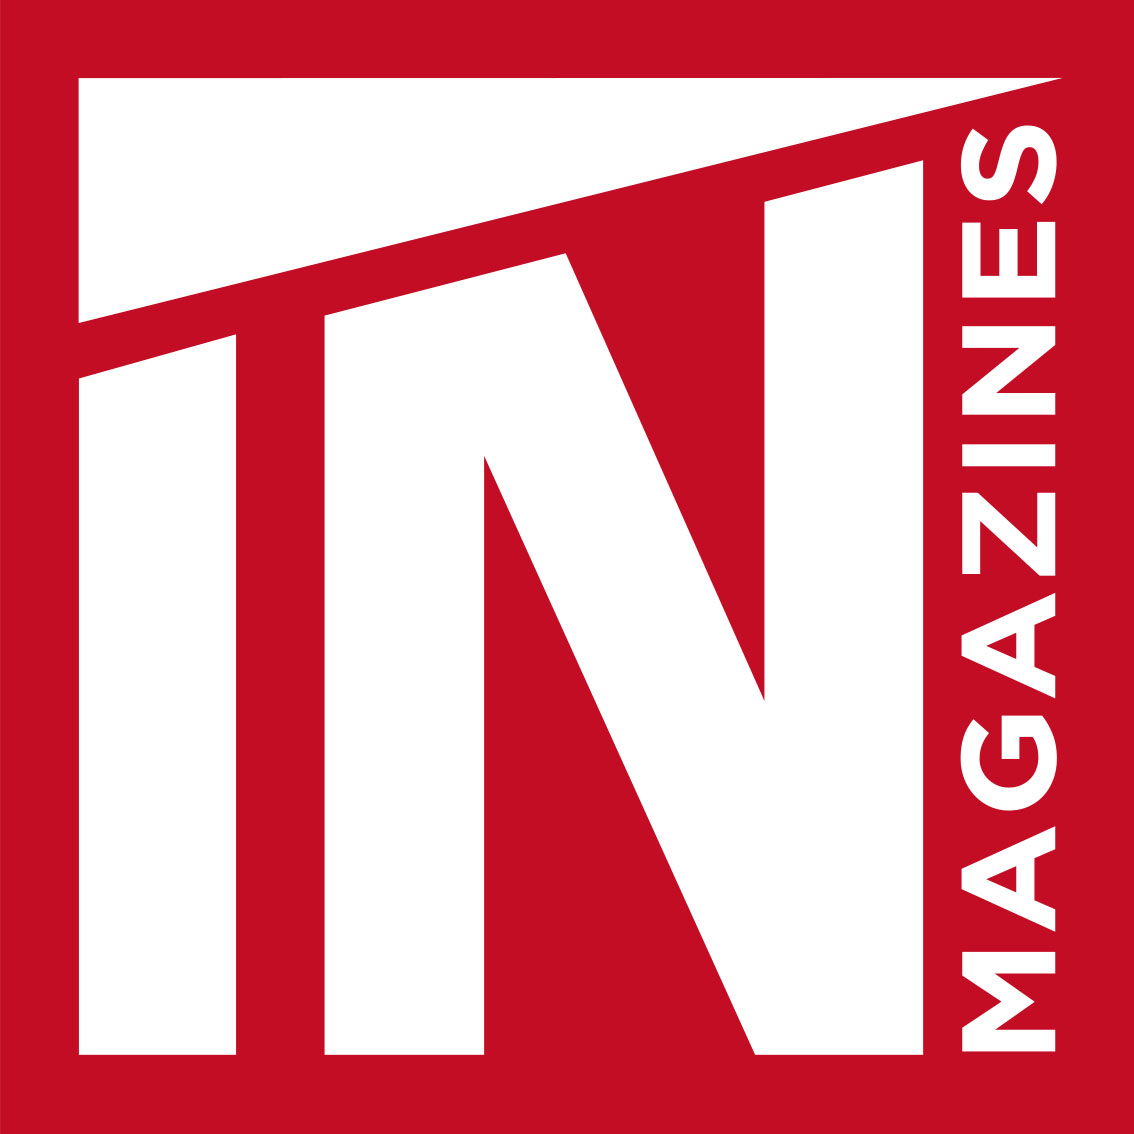 LOGO IN MAGAZINES ROUGE